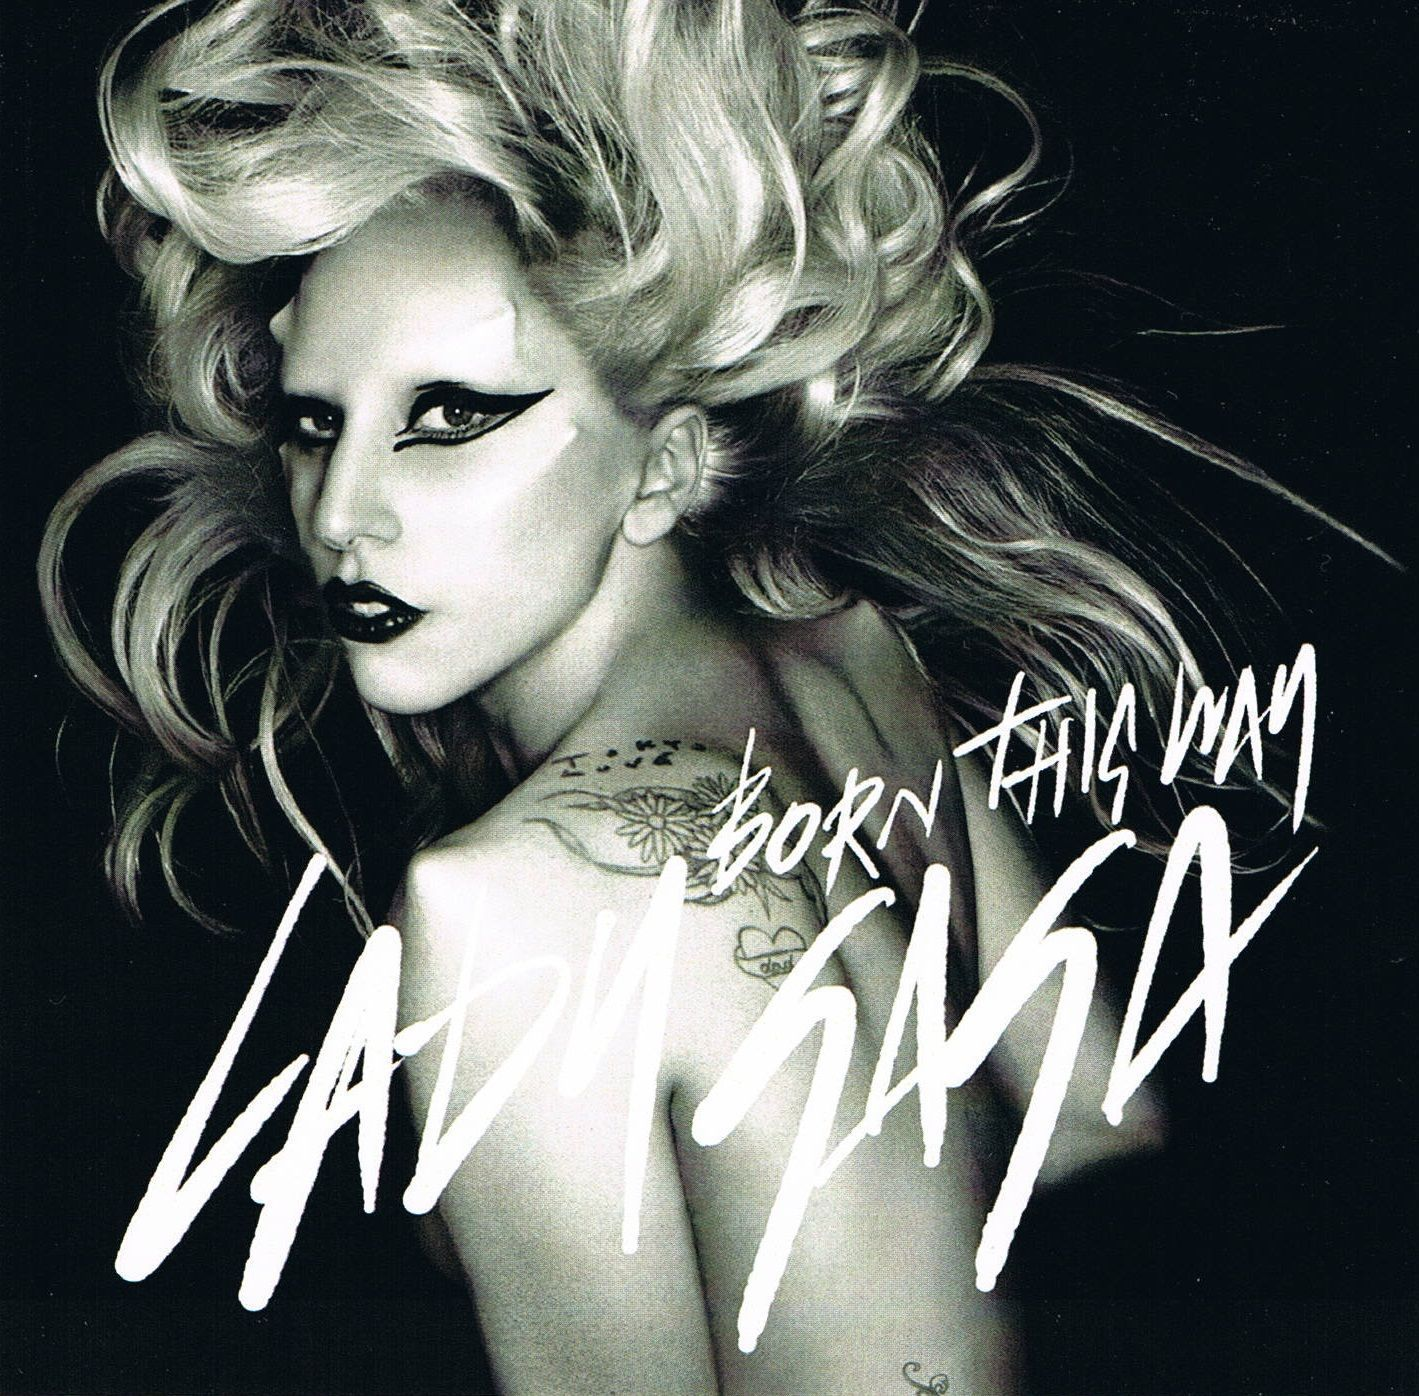 Lady-Gaga-Born-This-Way-Cd-Single-From-Usa